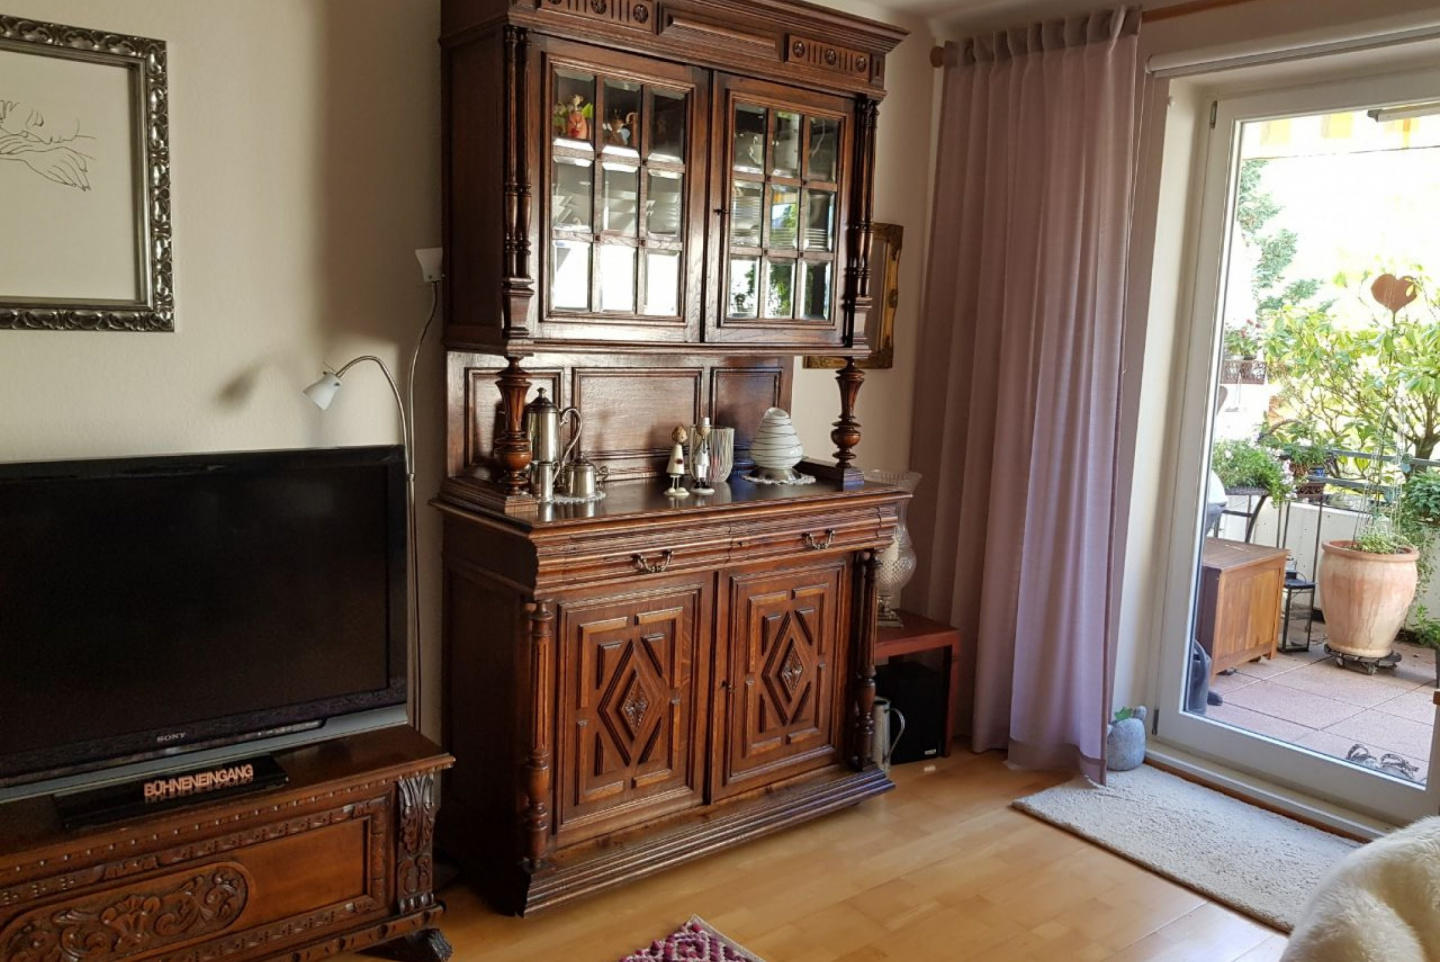 Spacious apartment in Langenhagen with Parking,... Slide-3